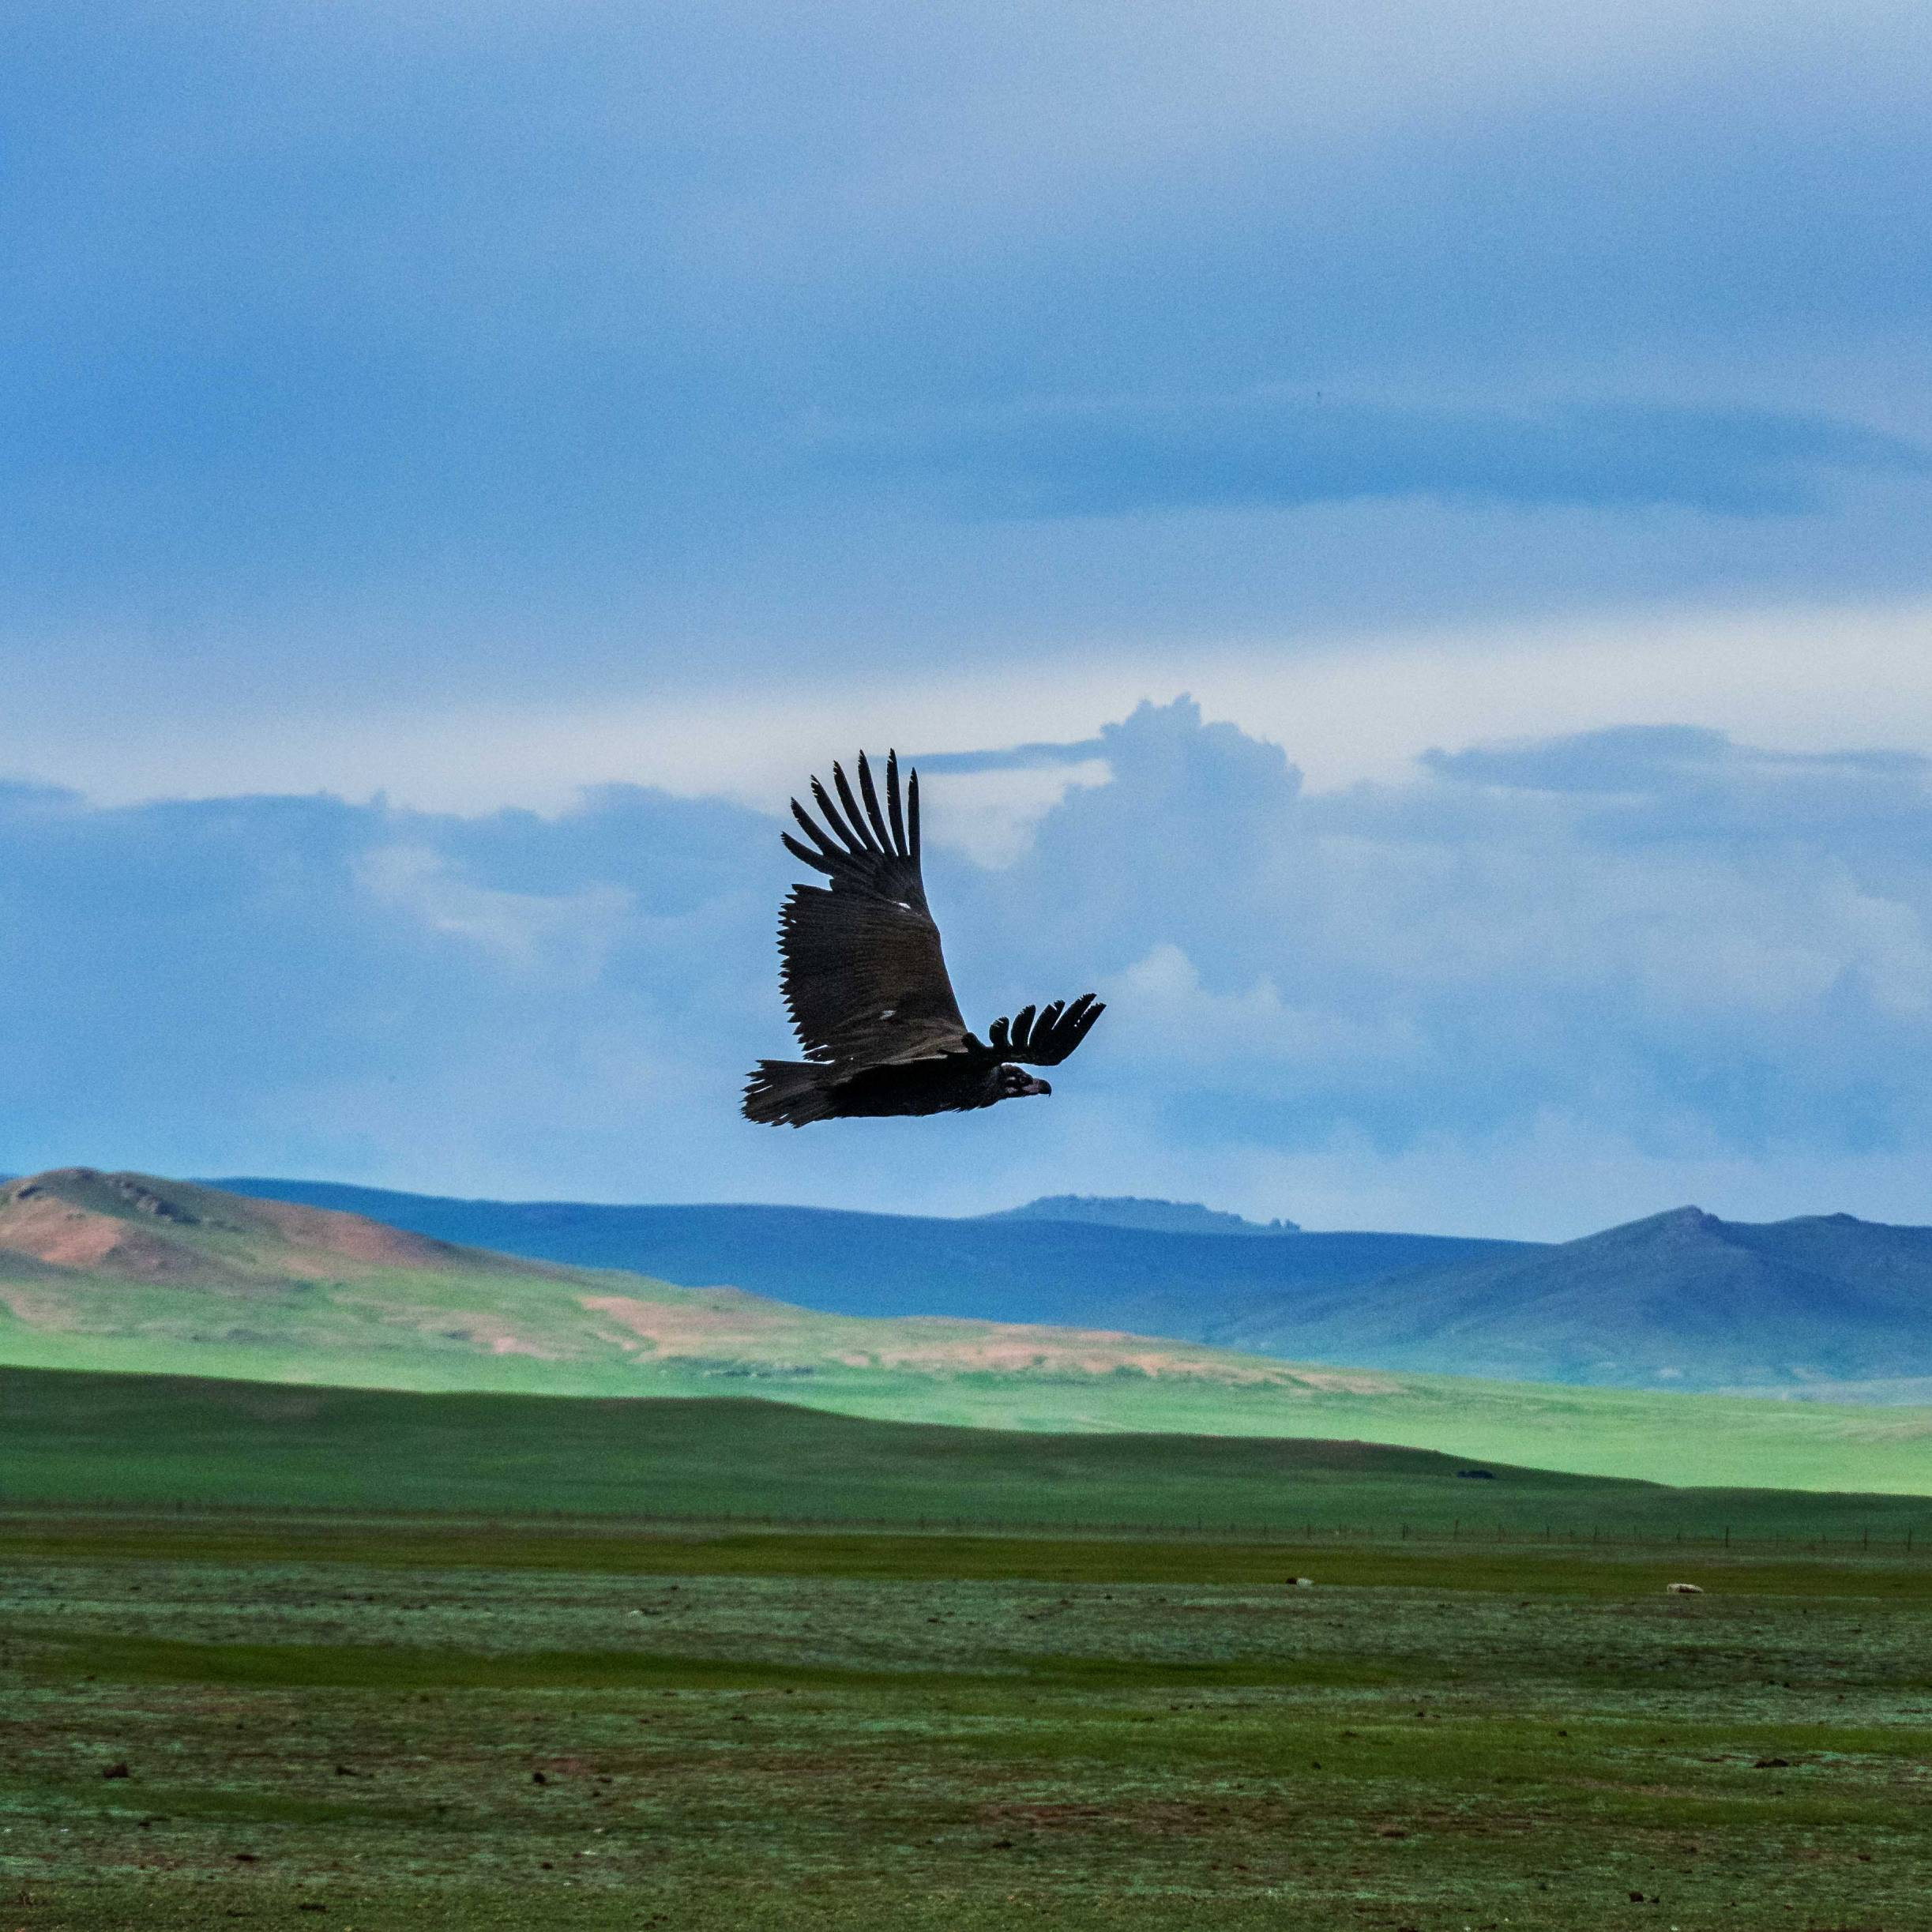 Wild Eagle over the Vastness